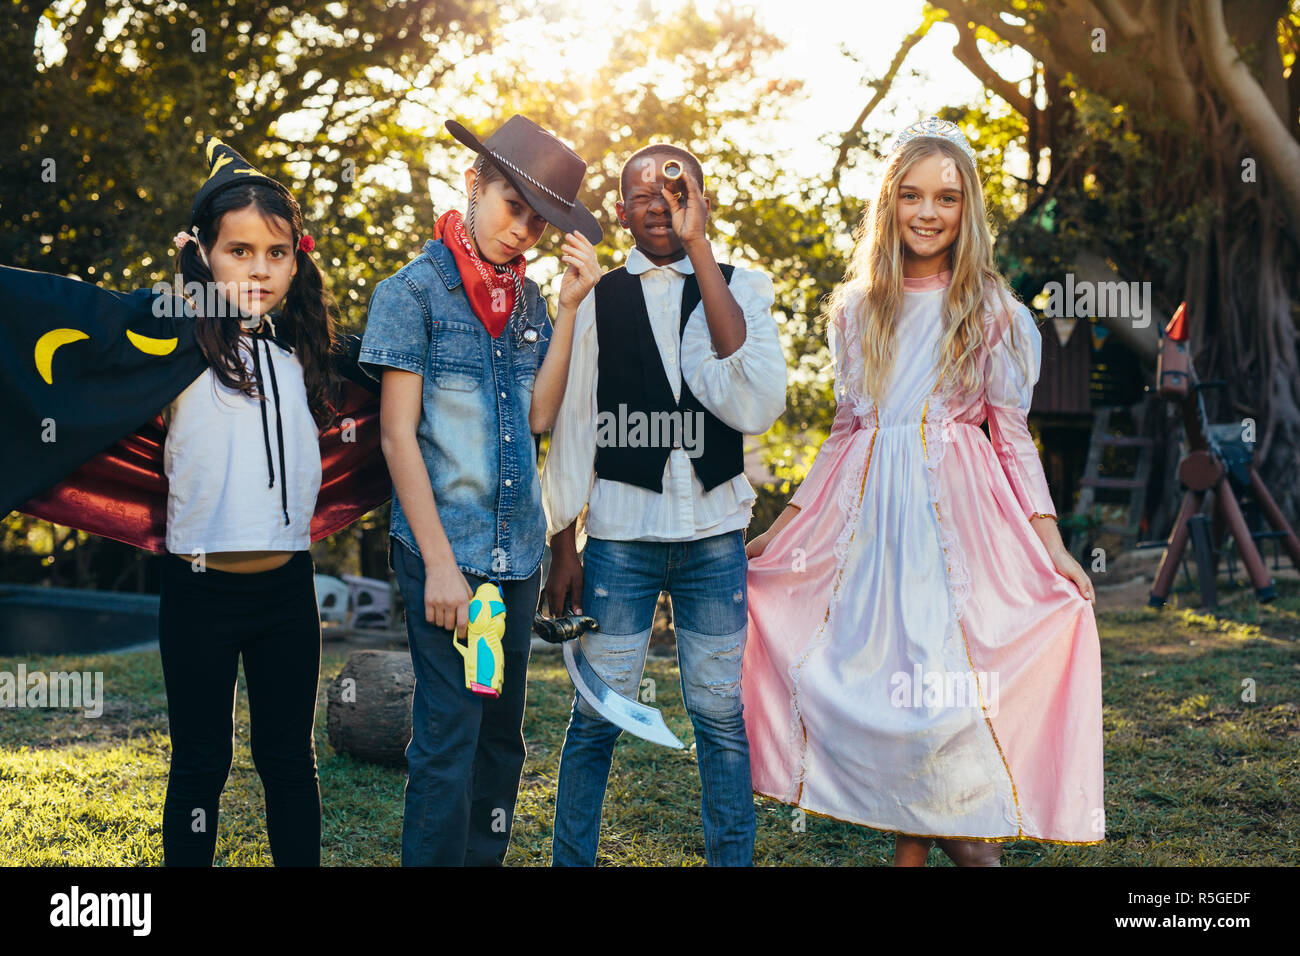 Group of kids standing in backyard garden wearing different costume. Young boys and girls having fun outdoors with superhero costumes. - Stock Image